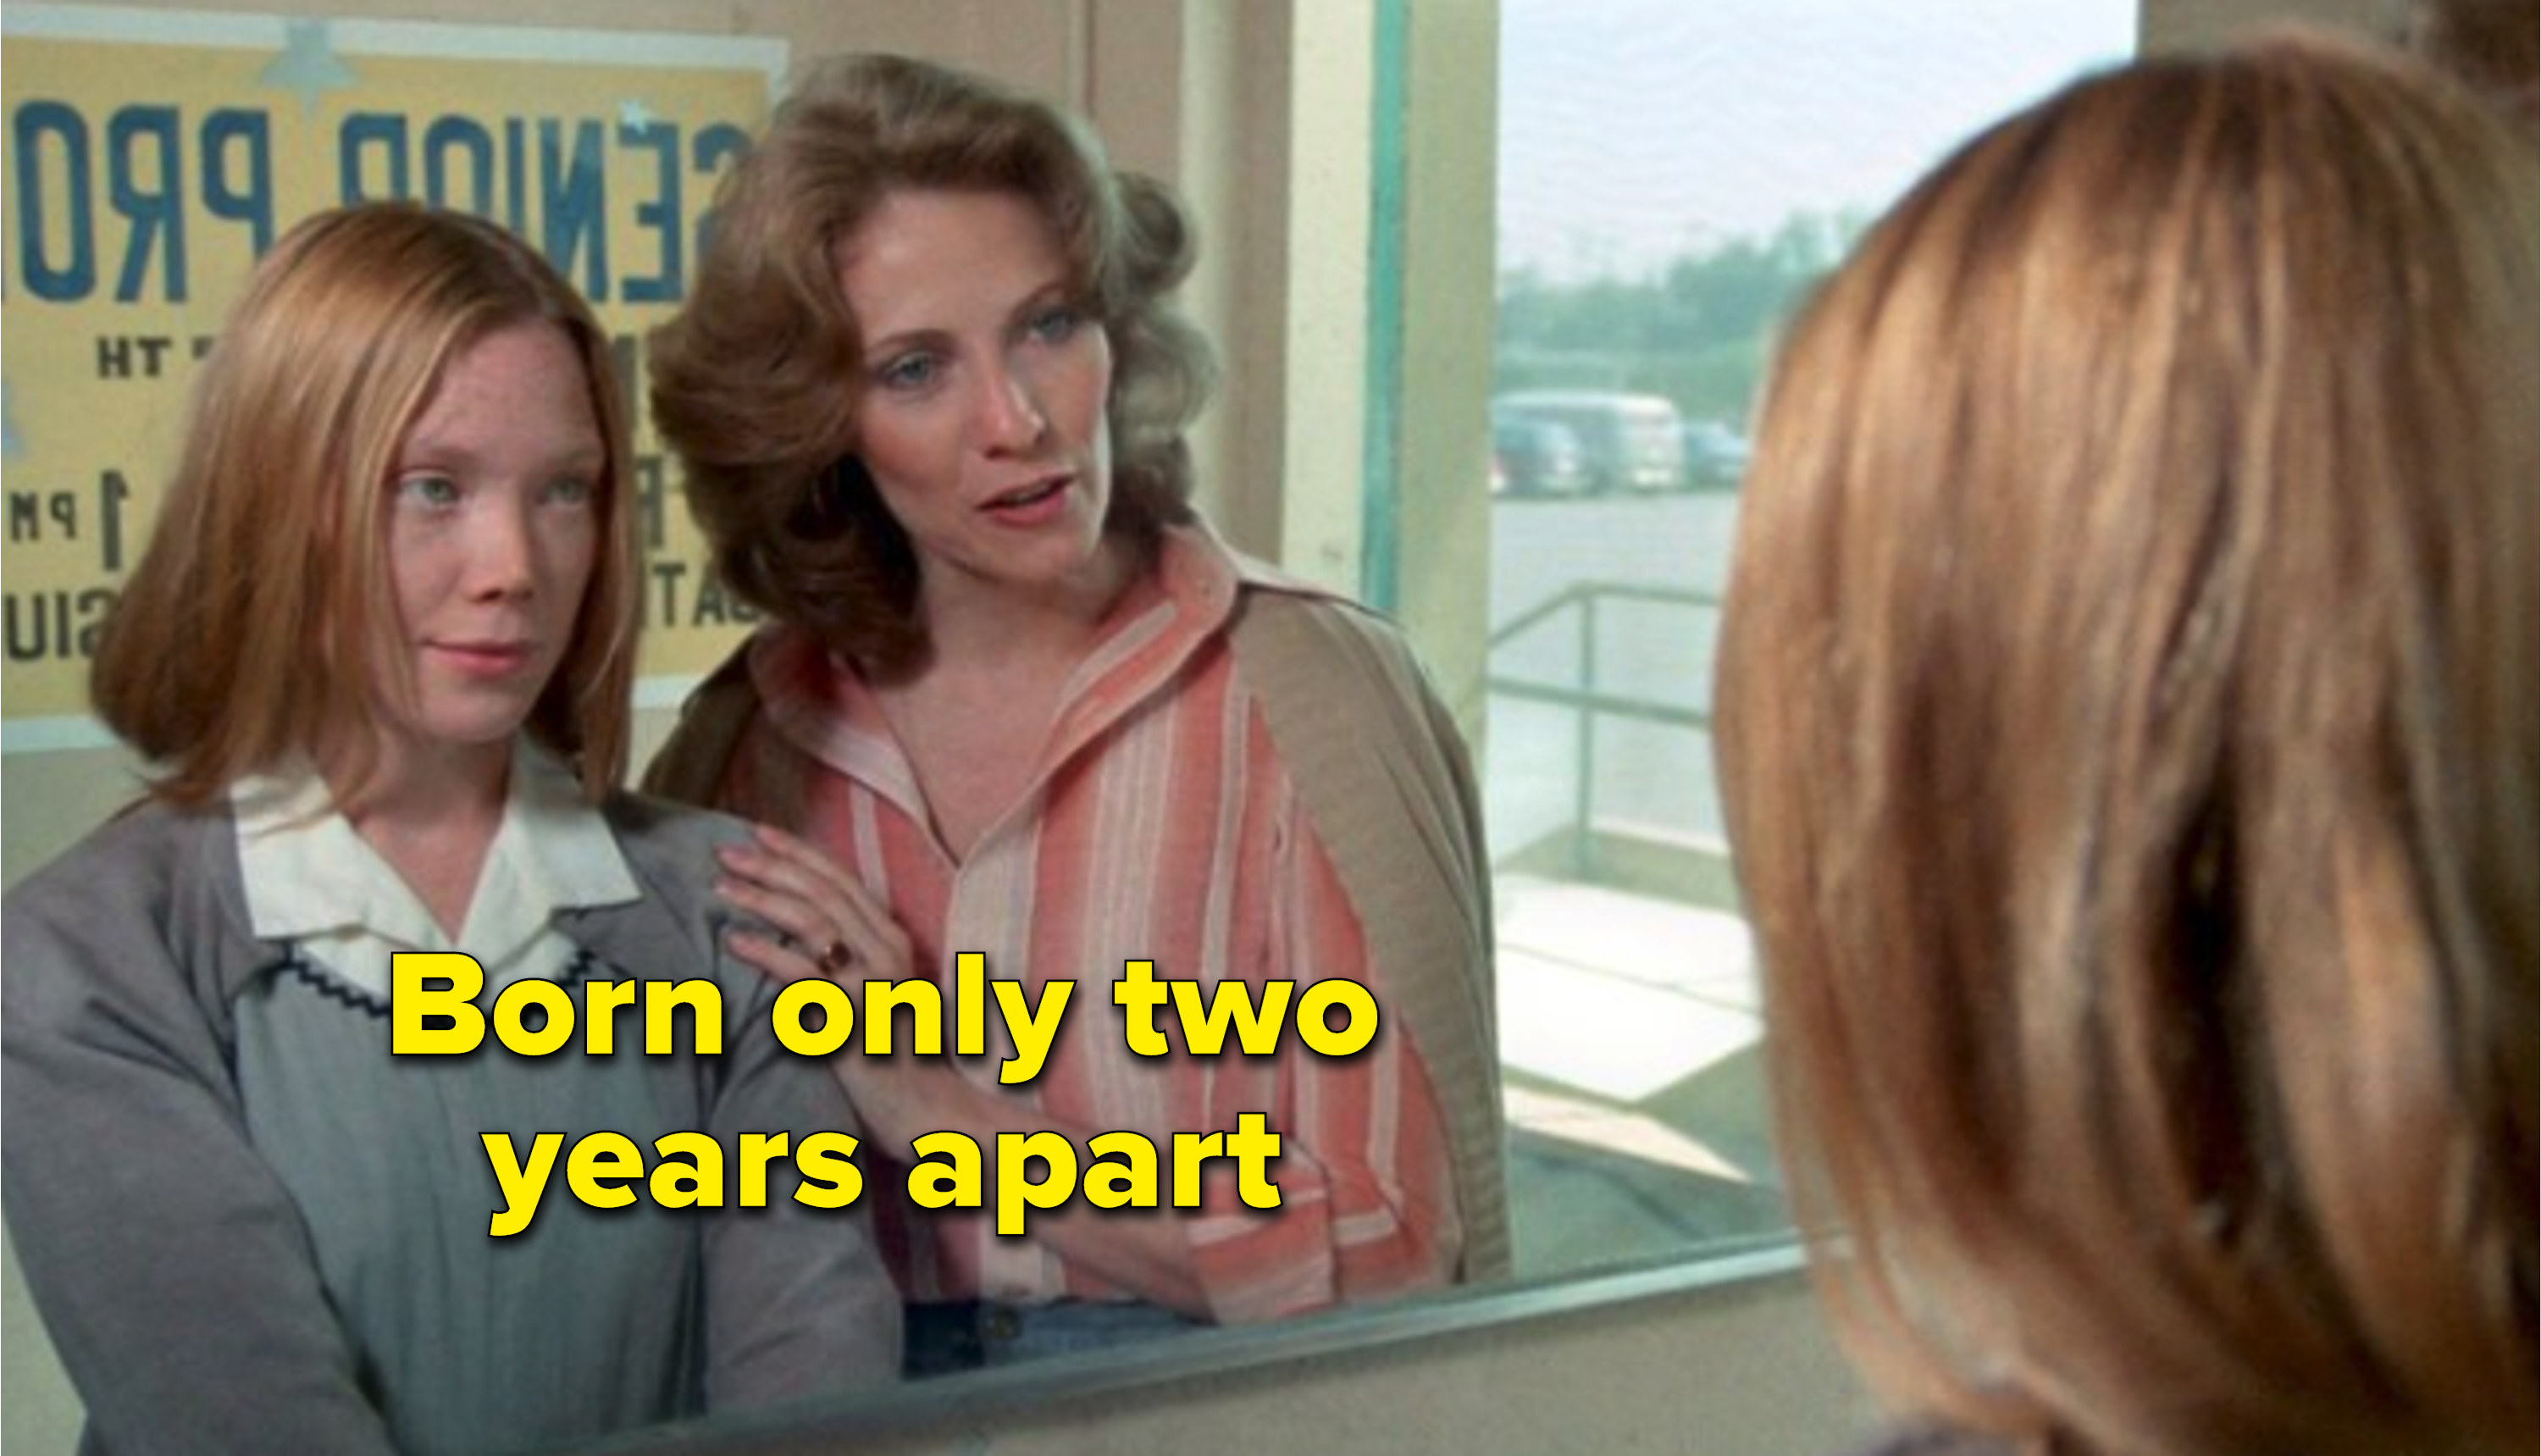 Sissy Spacek and Betty Buckley in a scene in front of a mirror